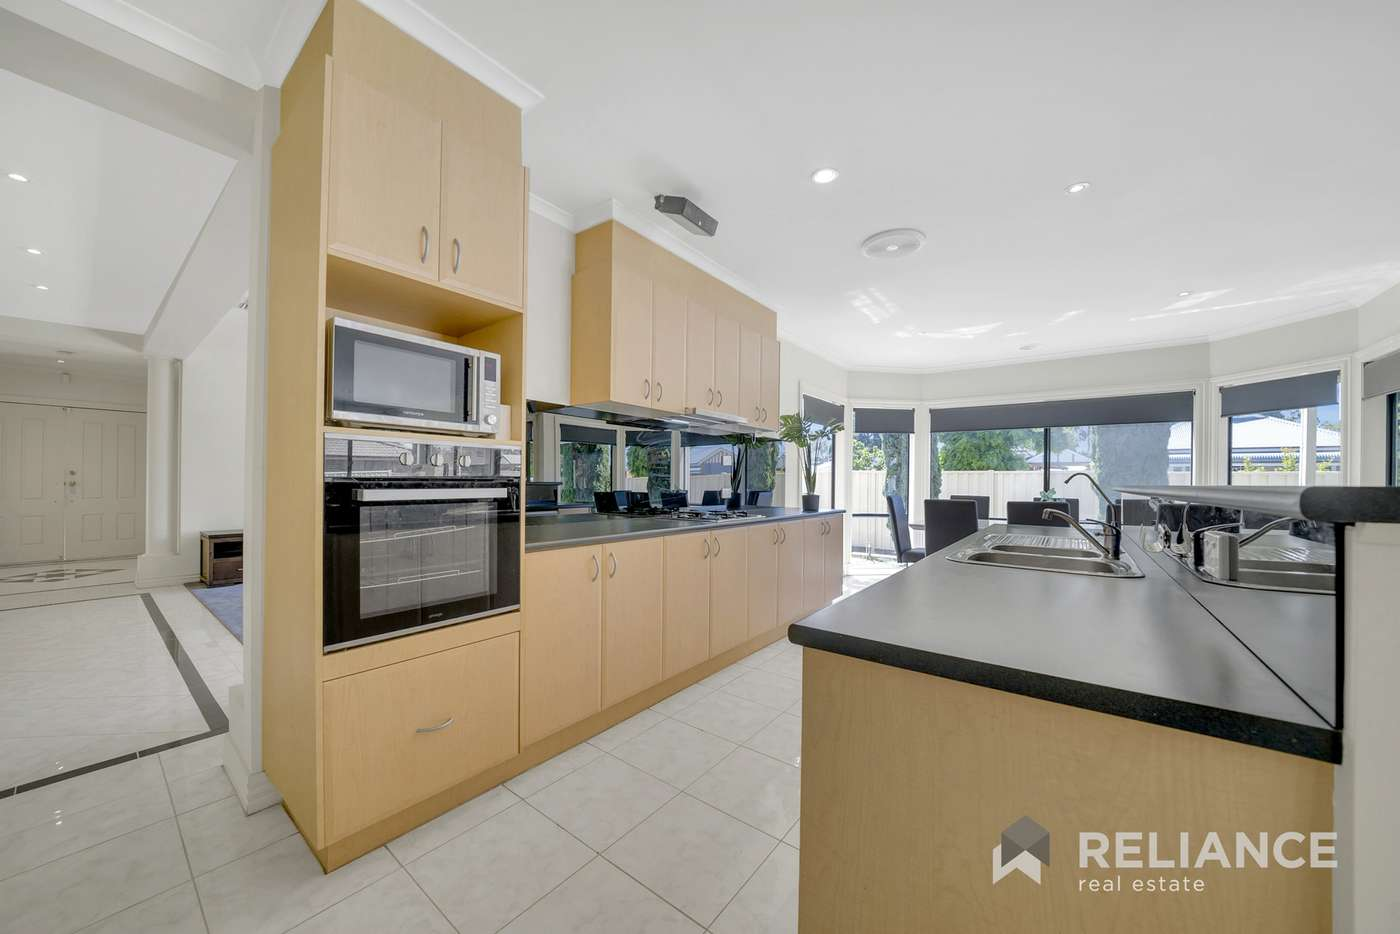 Fifth view of Homely house listing, 54 Wyperfeld Circuit, Caroline Springs VIC 3023